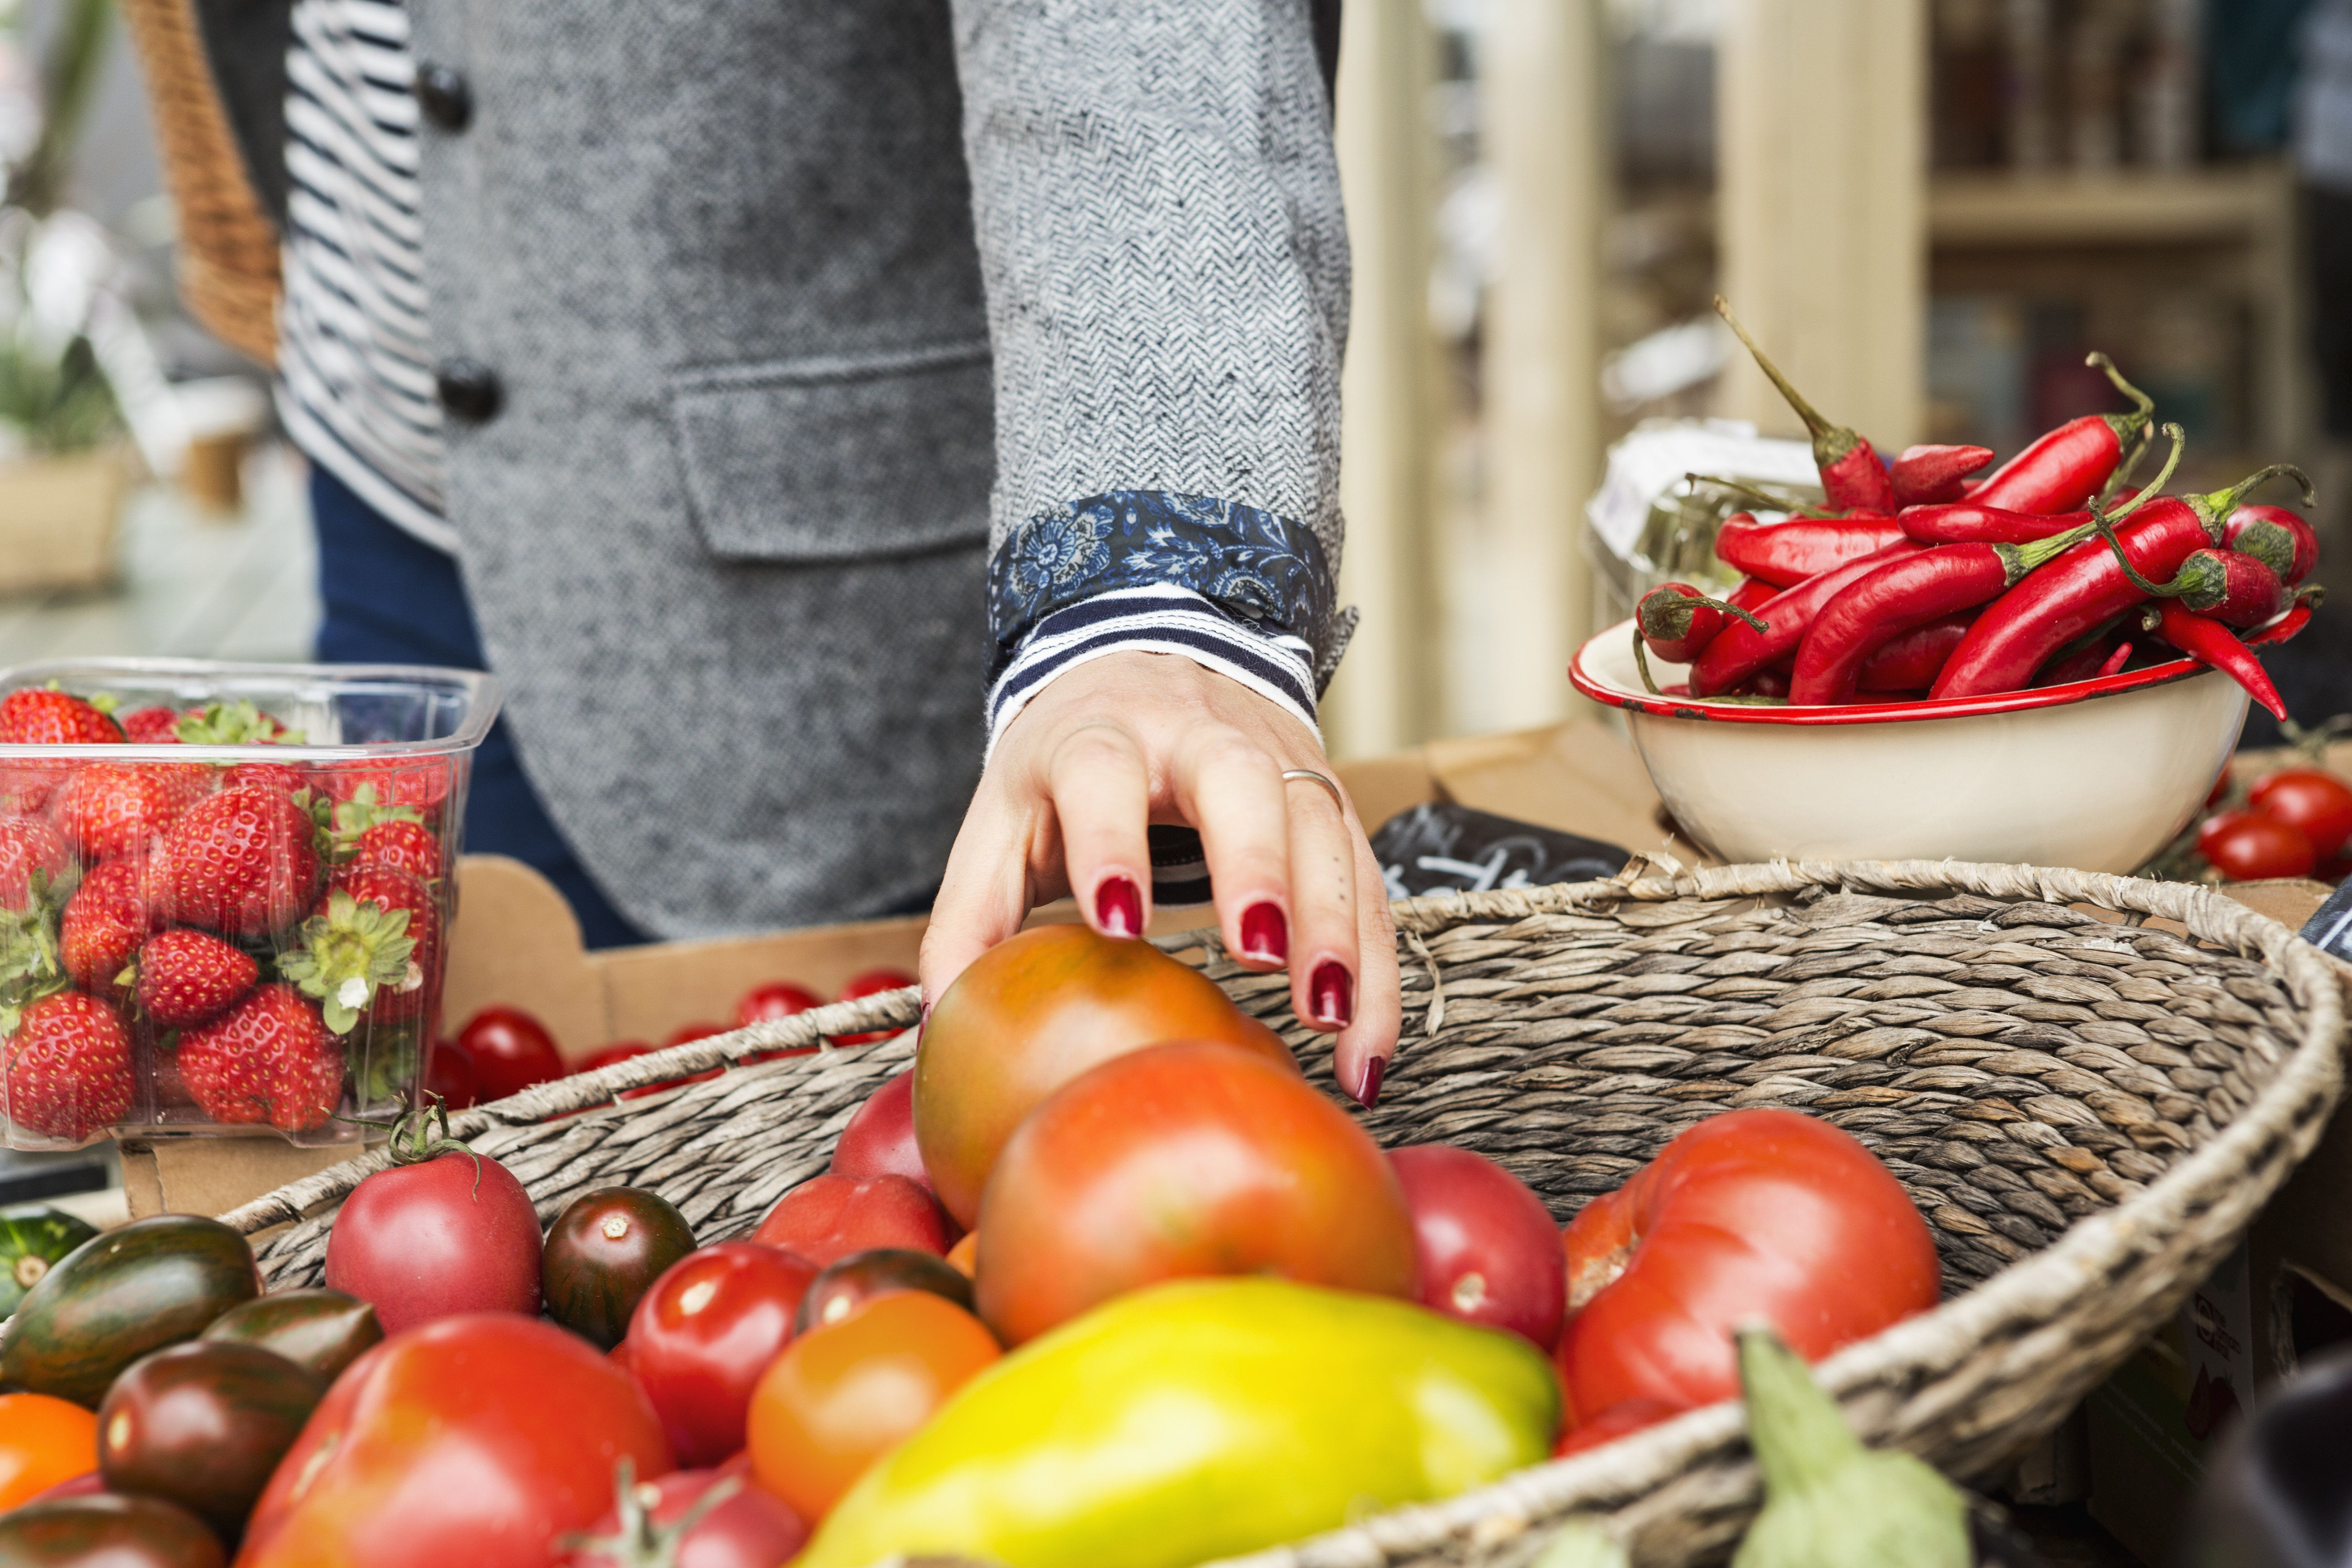 Close up of hand picking tomato from basket.